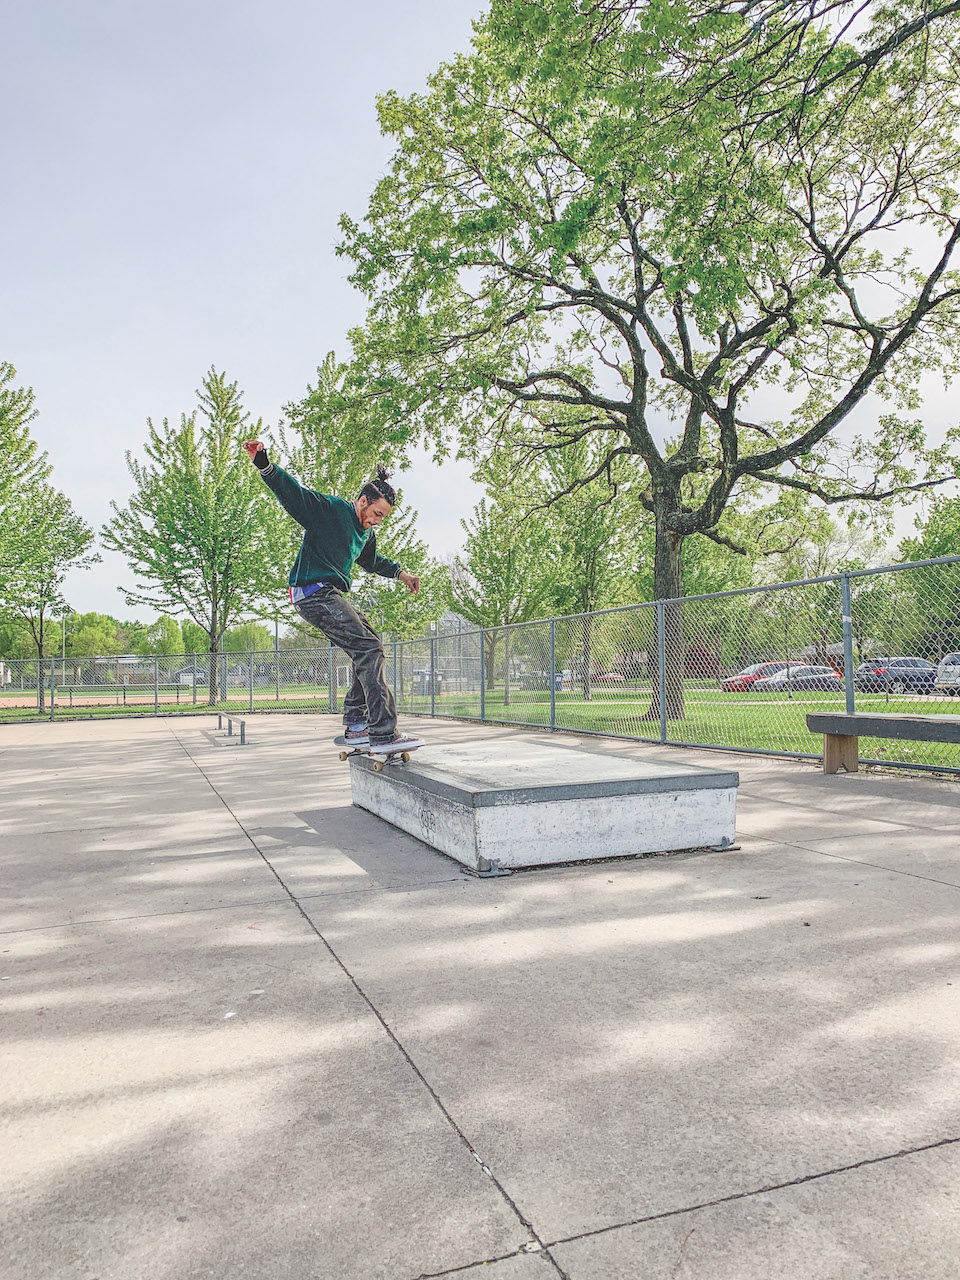 Tyler Kirksey grinds on a box feature at Armatage Park, the city's lone public skate park in Southwest. Photo by Andrew Hazzard